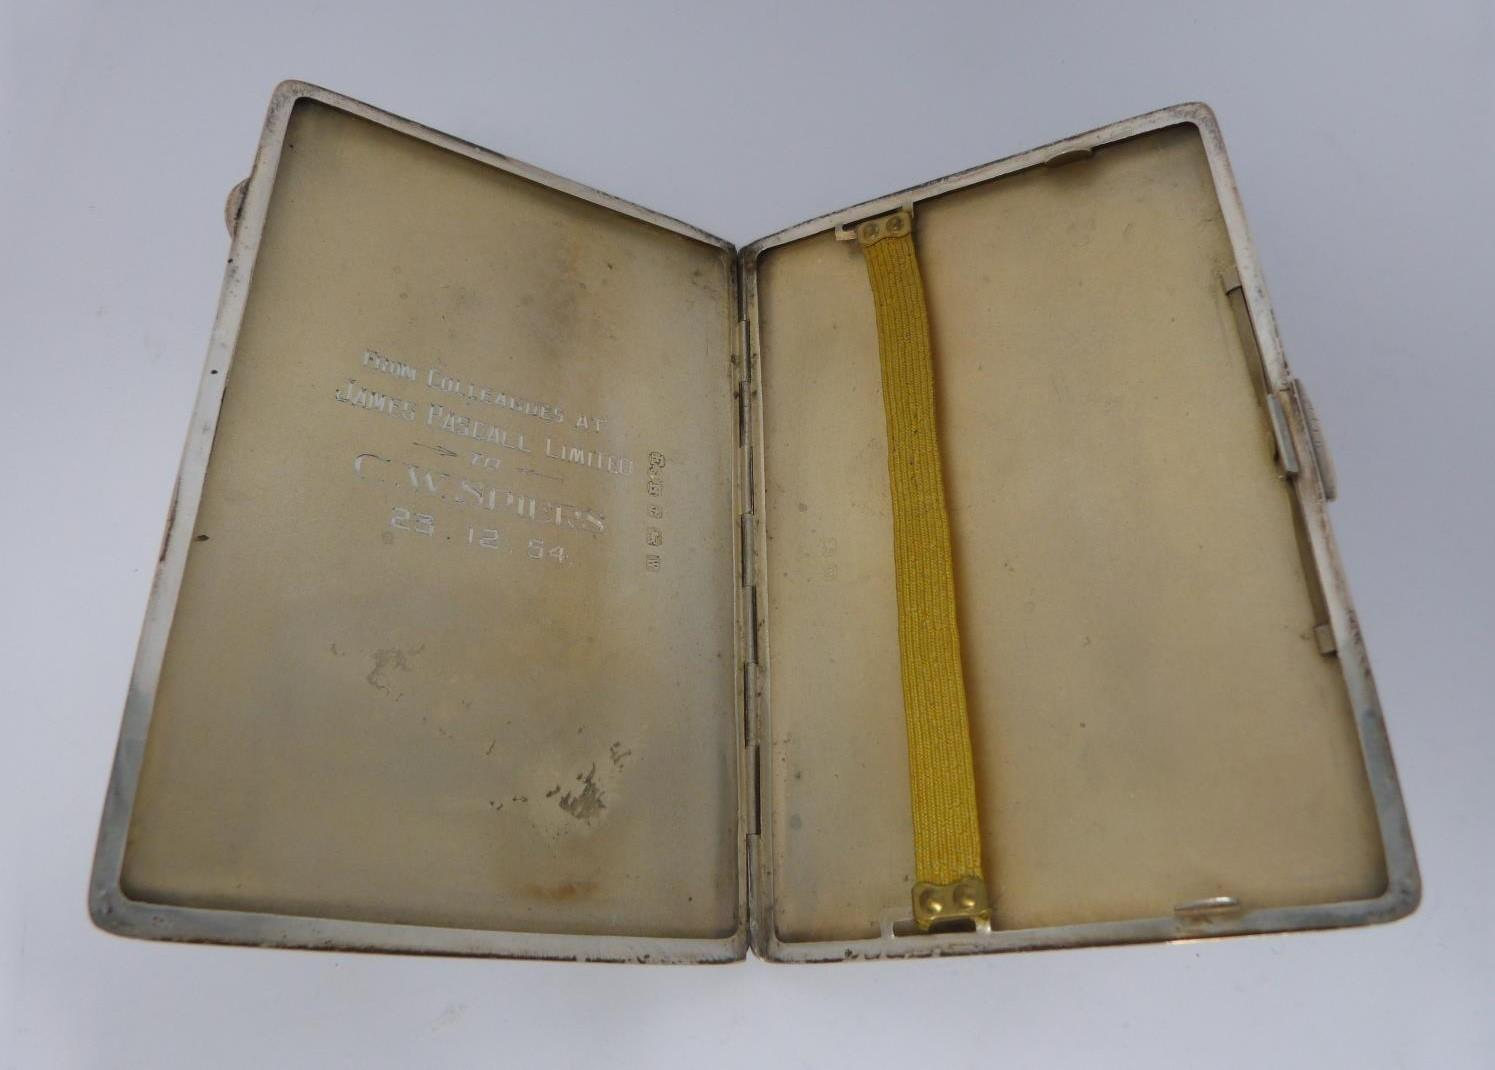 Two silver cigarette cases and a silver cigarette box, rectangular engine turned decoration case, - Image 13 of 14